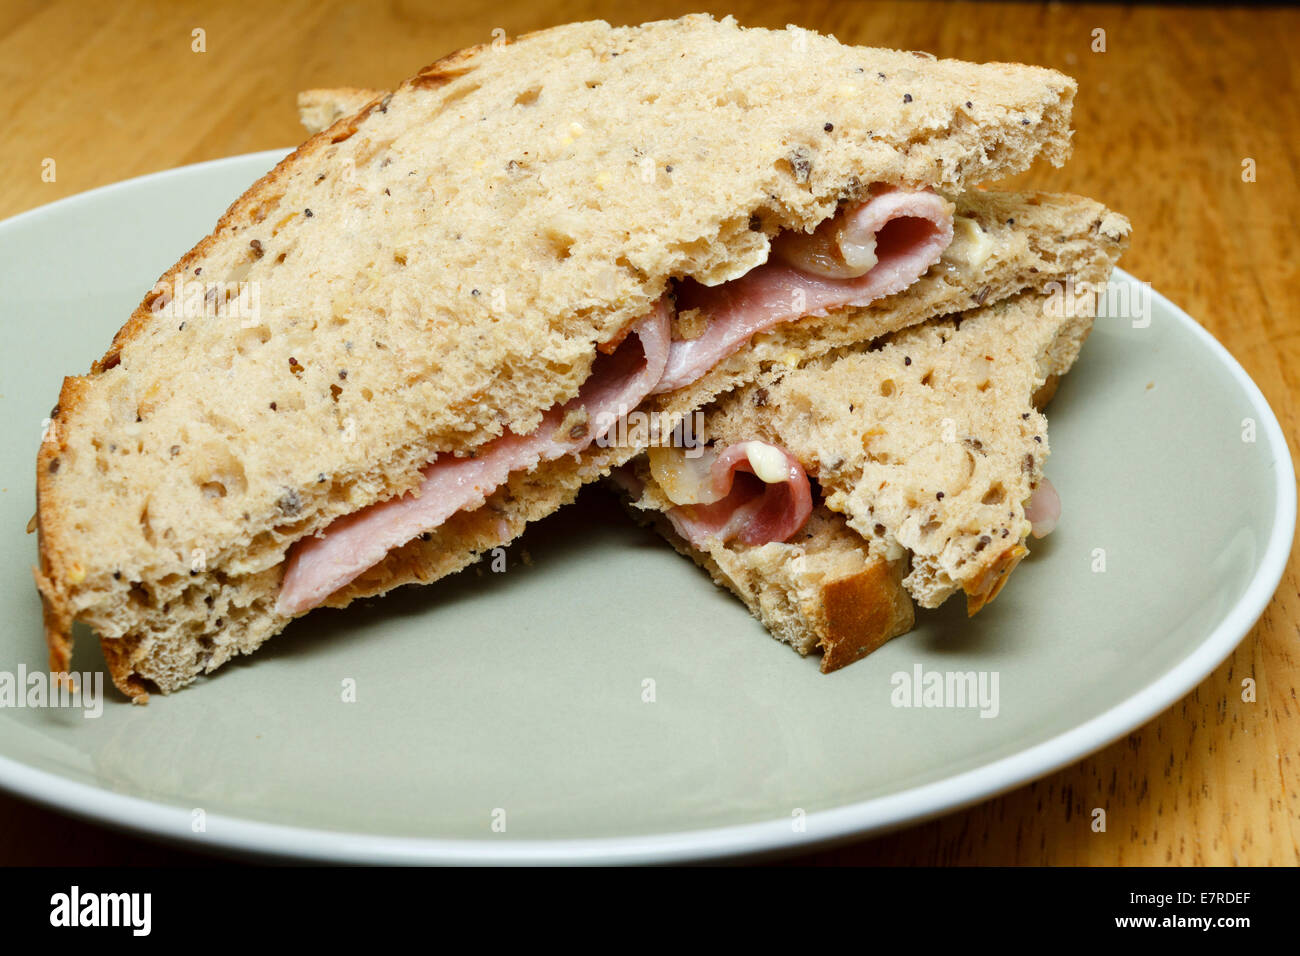 Bacon sandwich on seeded bread, cut into halfs as triangles - Stock Image